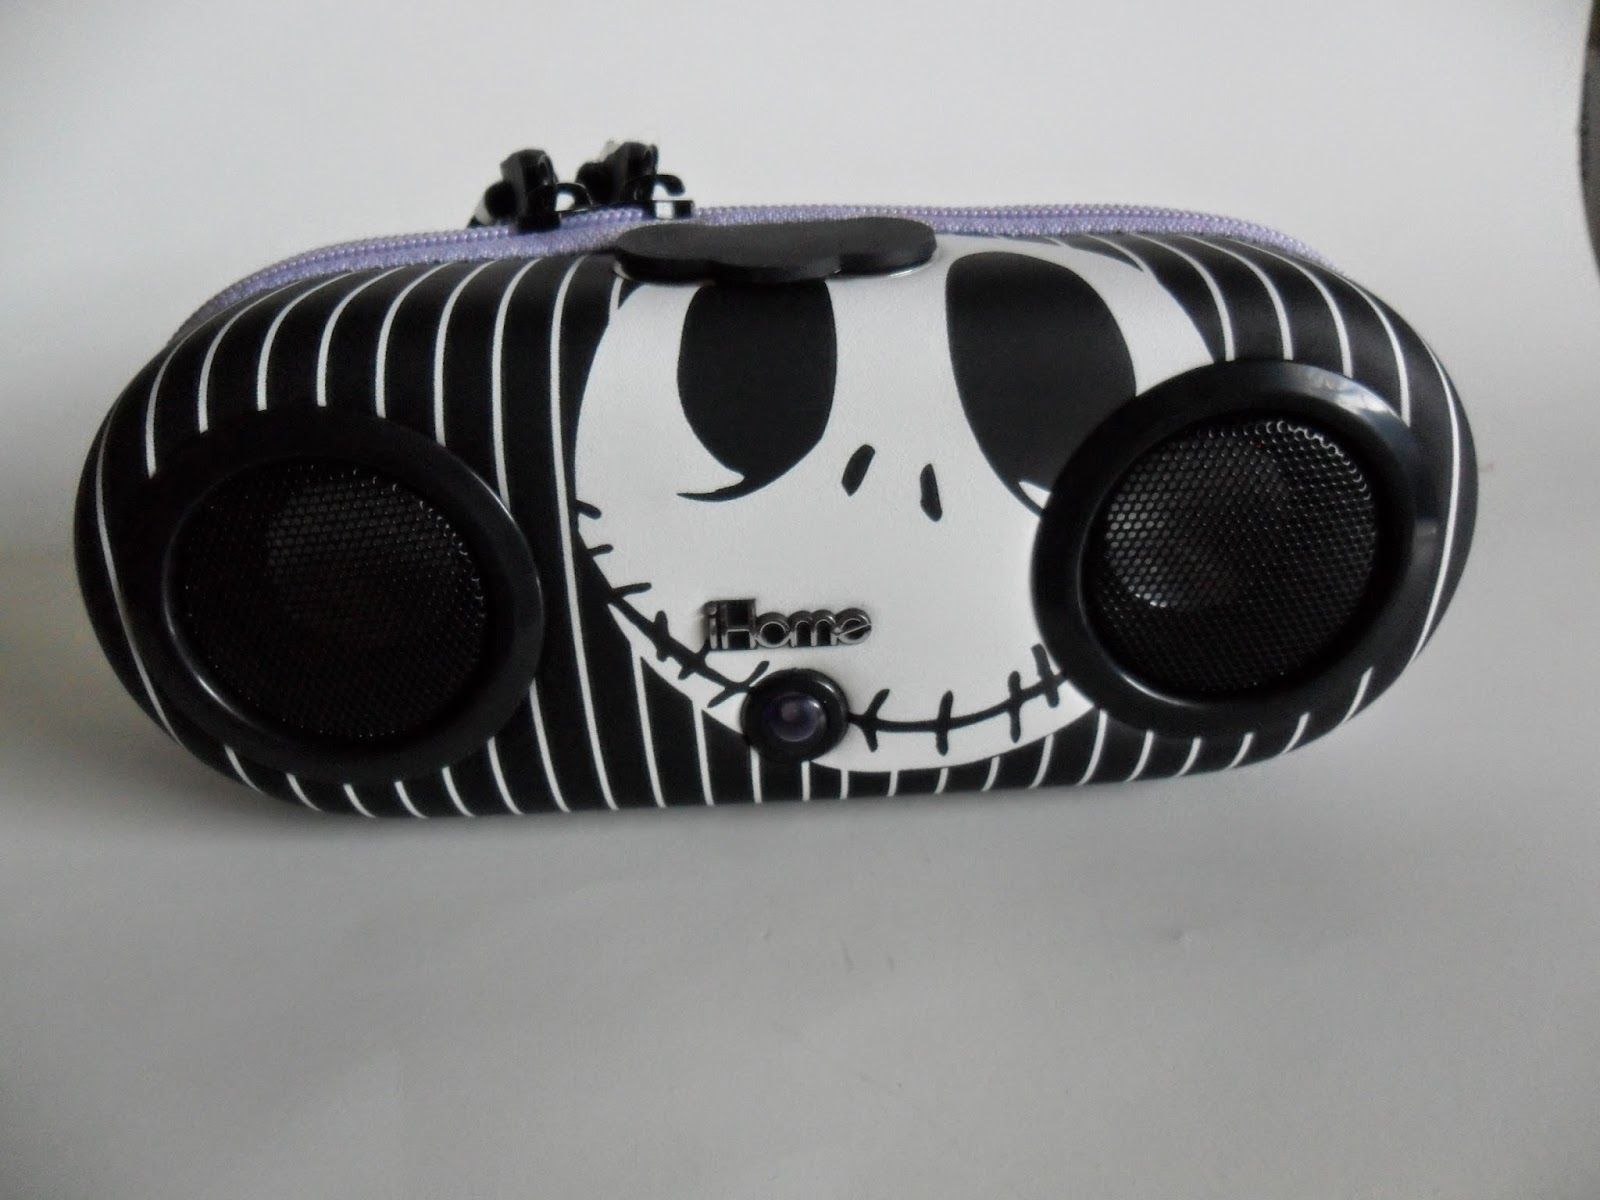 eKids Jack Skellington  Portable Stereo Speaker System for MP3 Players, by iHome